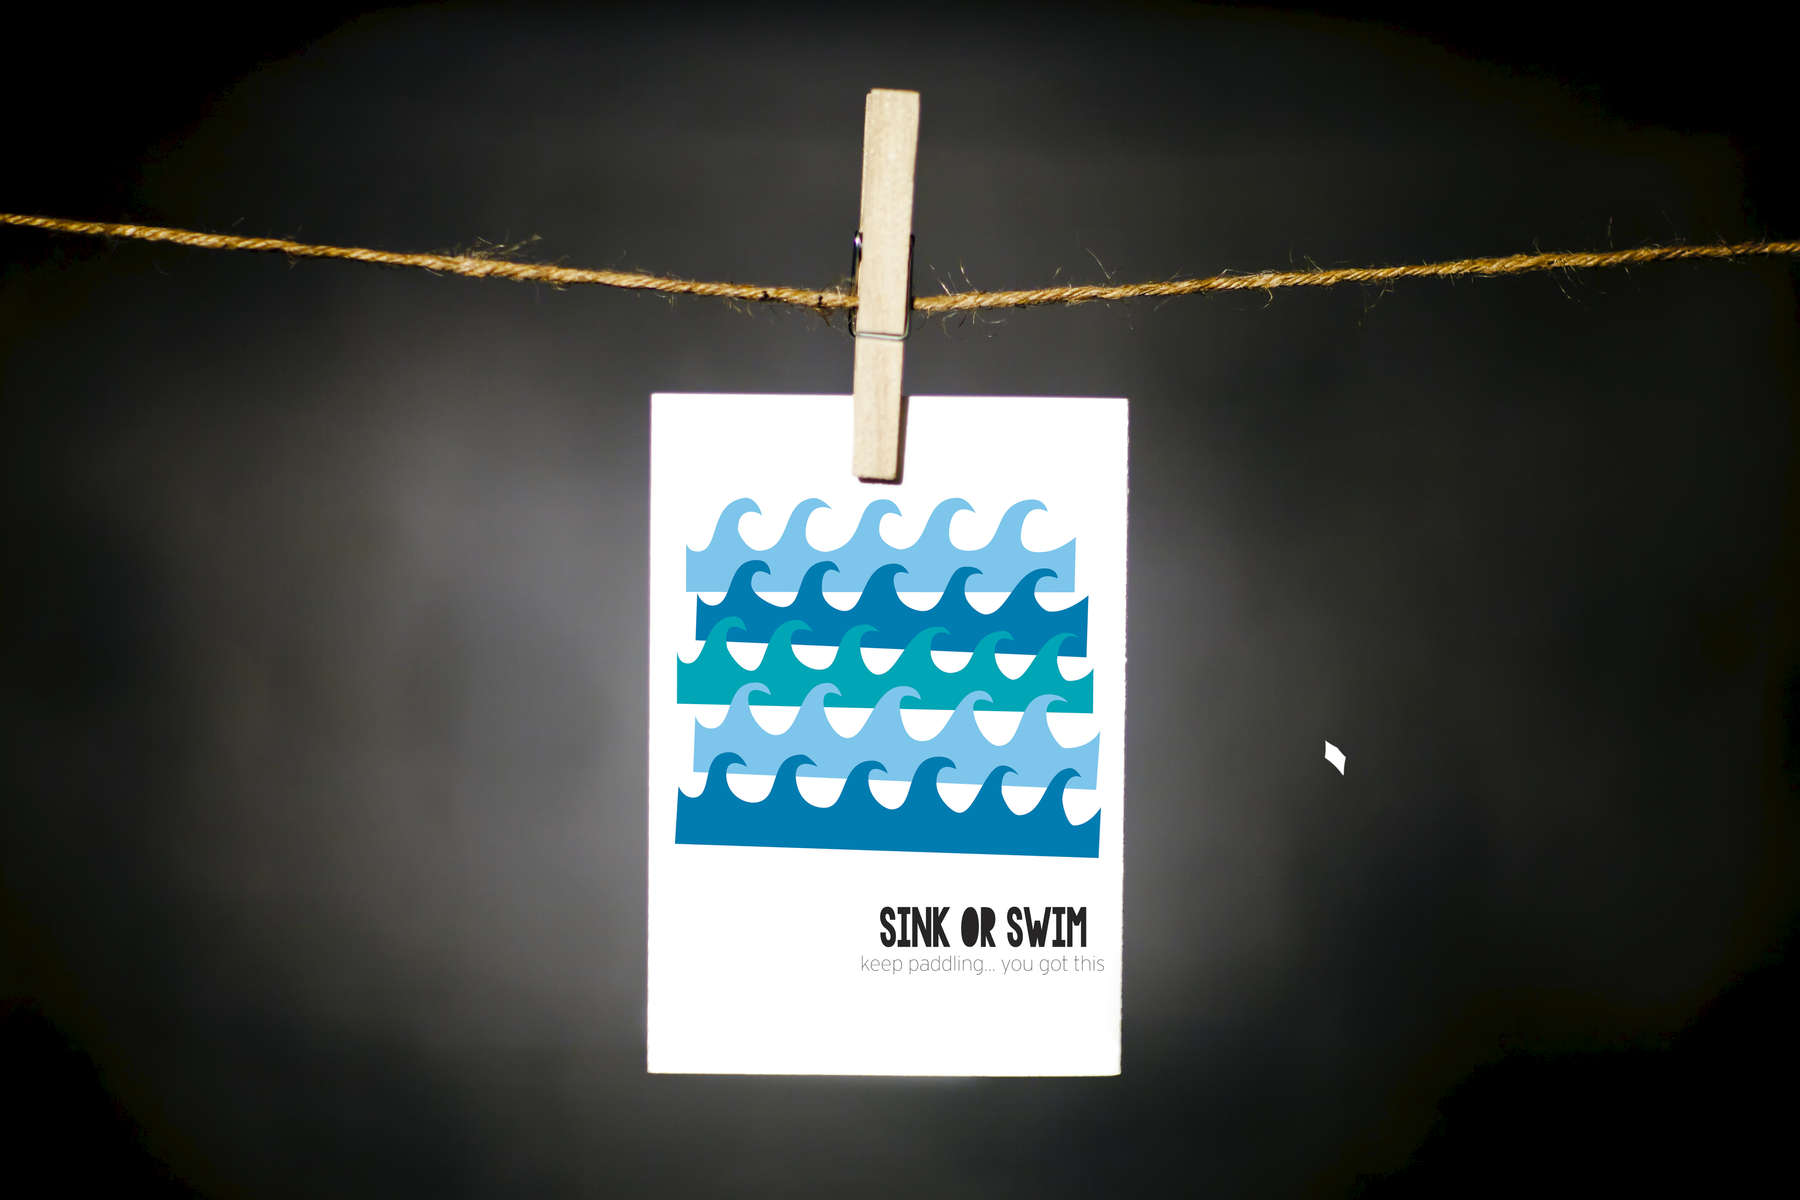 pURCHASE hEREsink or swim.  keep paddling... you got this.life has a tendency of throwing the occasional sh*t storm into the smooth groove of the day-to-day.  let's help remind eachother jst how strong + resilient we, as people, truly are.each card:is printed on 100# recycled + responsibly-sourced paper //measures 3.5{quote} x 5{quote} //is accompanied by a recycled kraft paper 4-bar envelope // professionally printed //individually packaged in sealed cellophane sleeve //crafted + printed in colorado, usa.